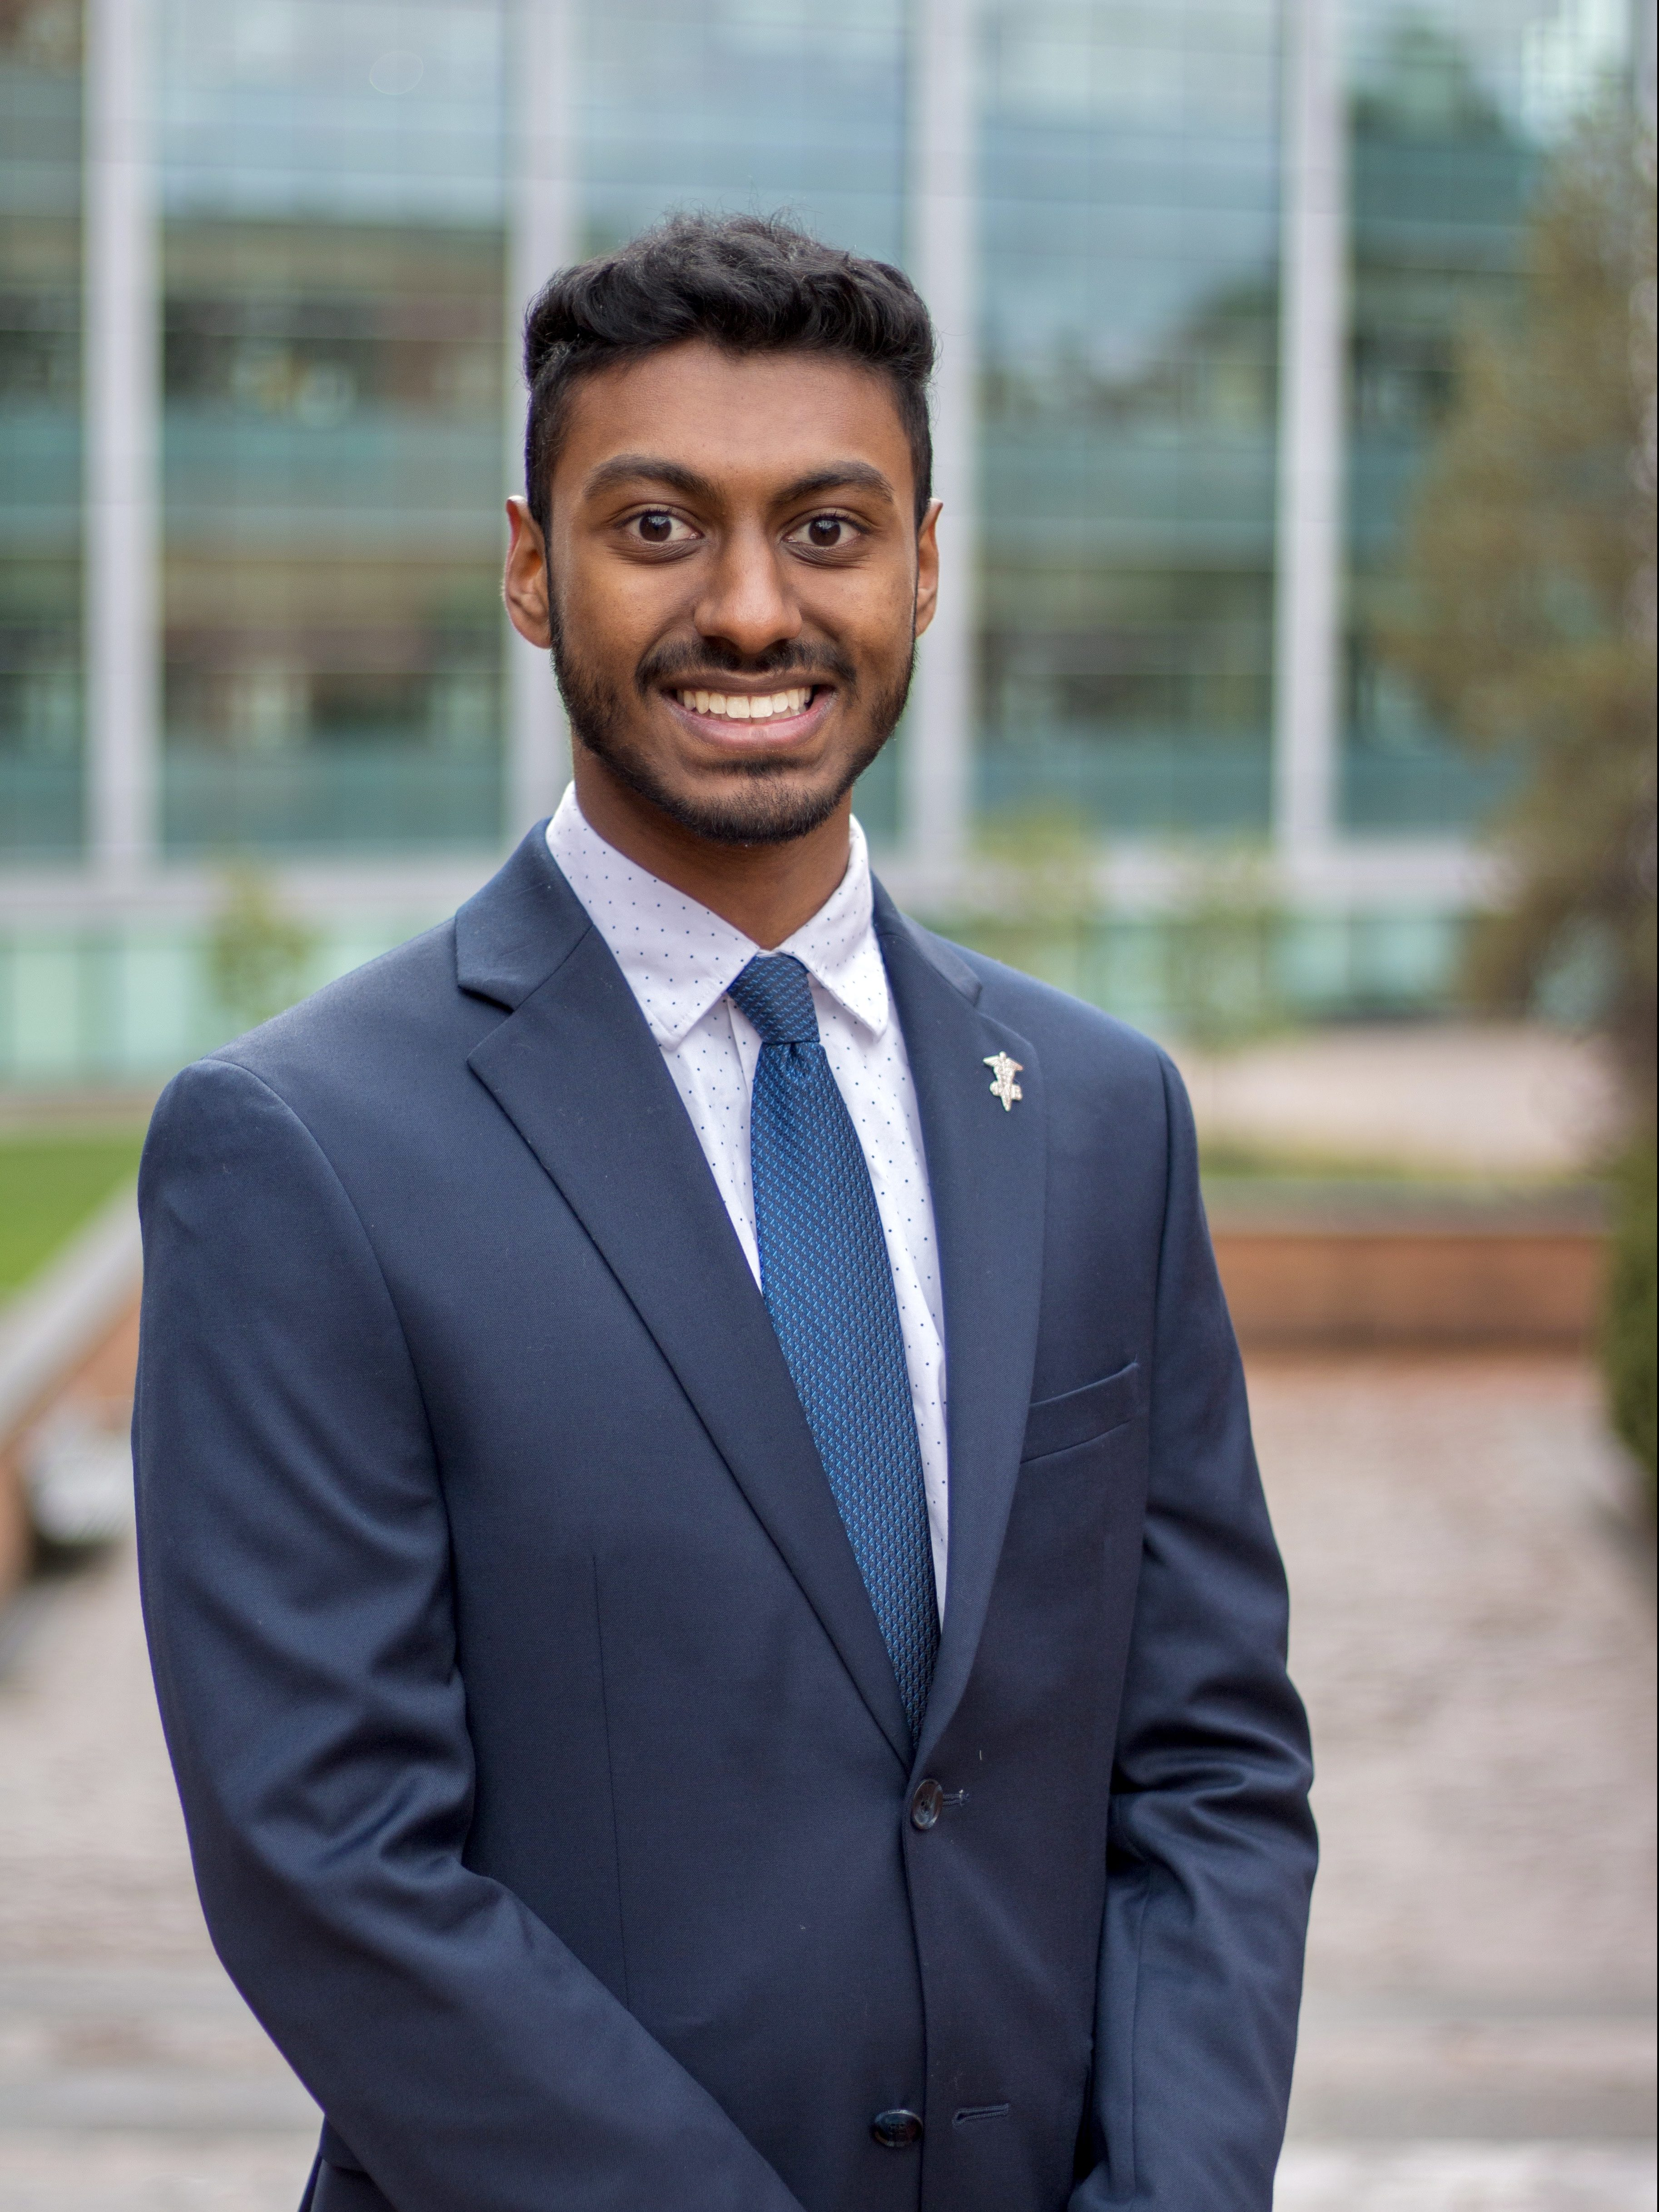 Vasan smiling in a suit